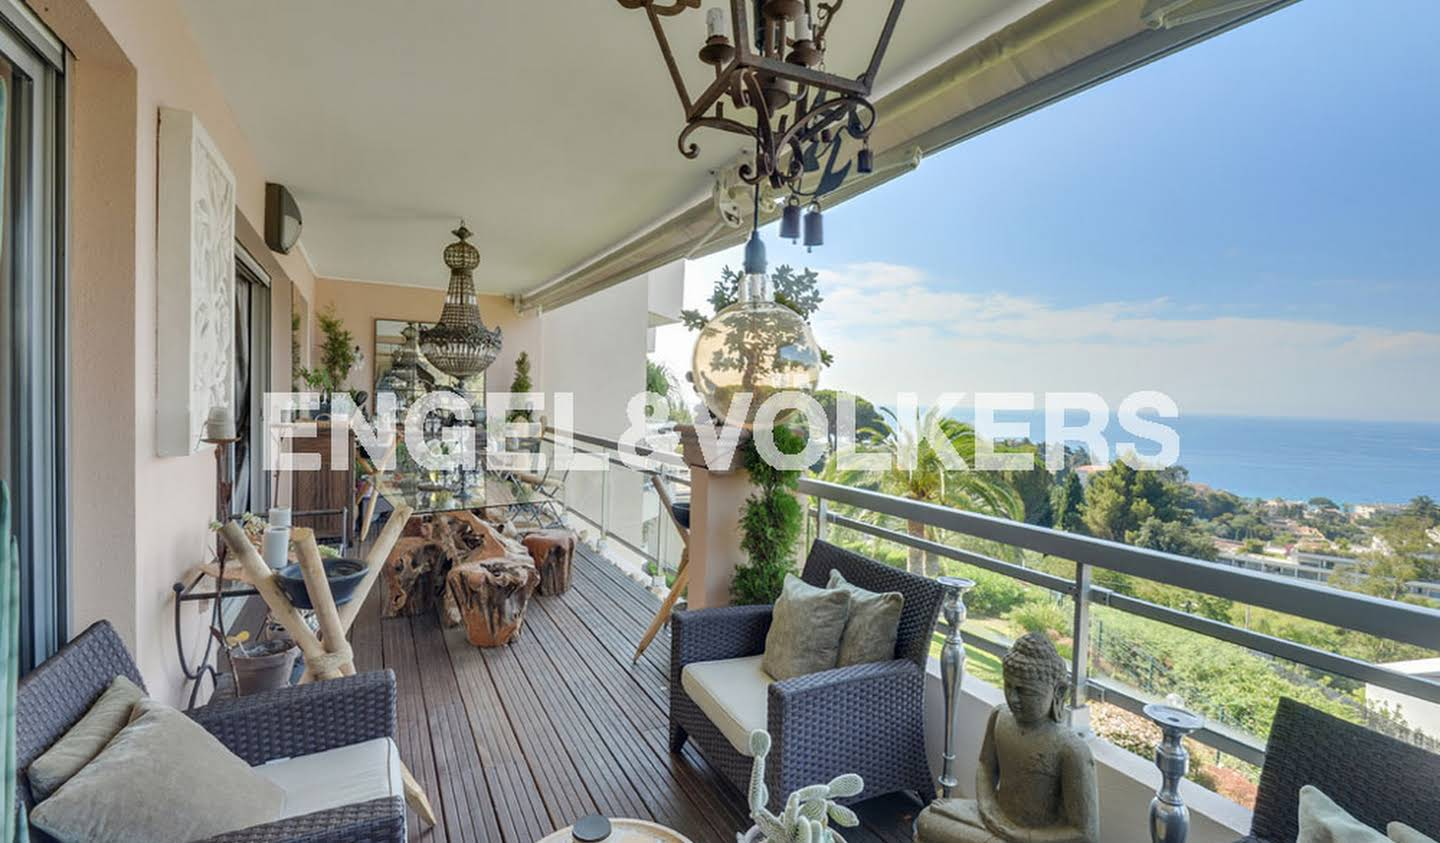 Apartment with terrace and pool Cannes la bocca